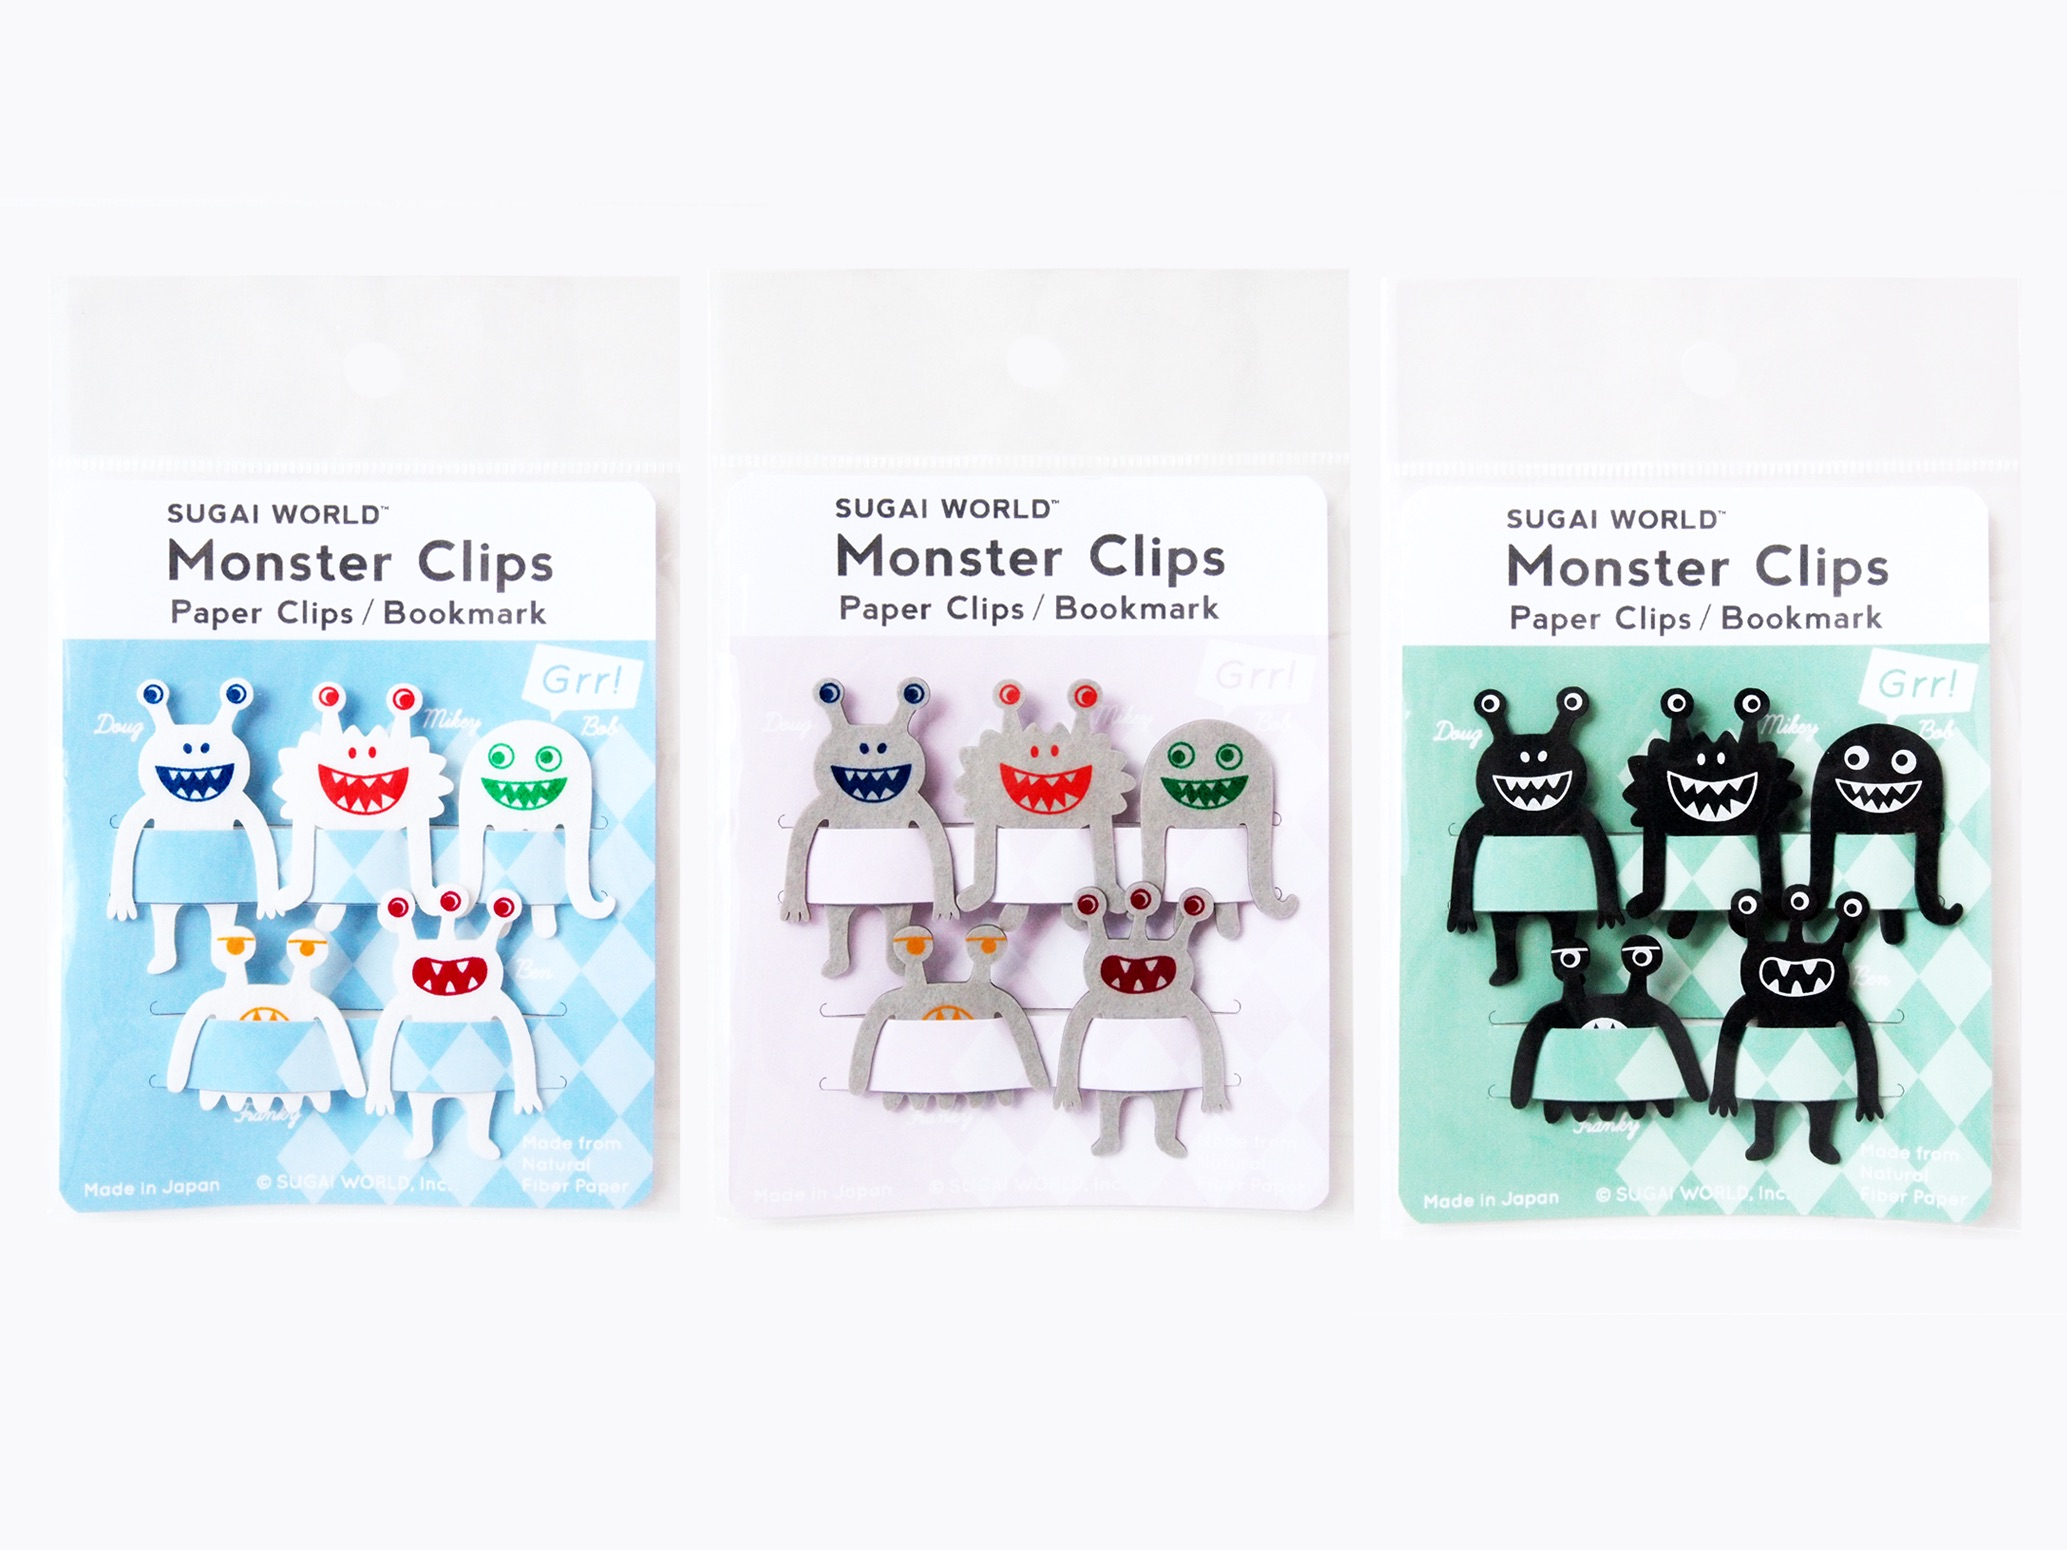 SUGAI WORLD : Monstre Clips ( White, Gray, Black)